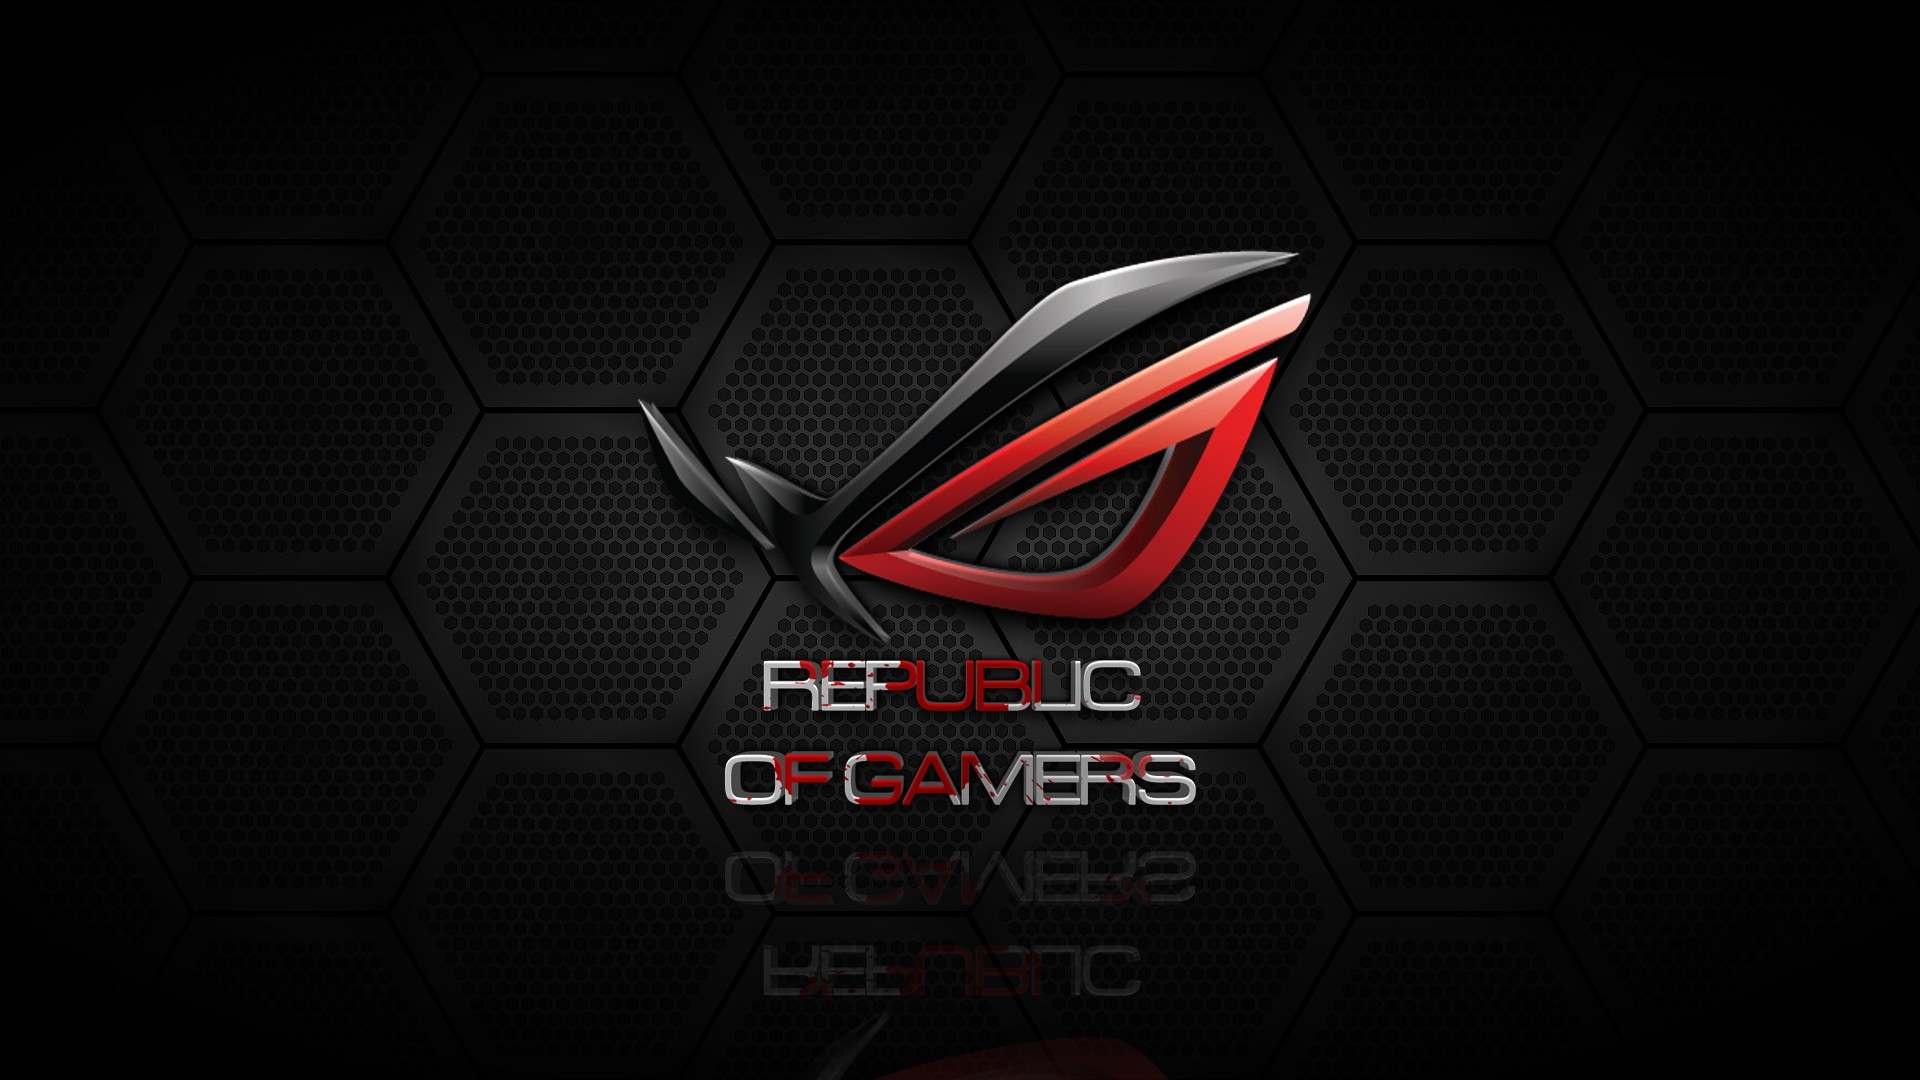 Asus Wallpapers Widescreen: RoG Wallpaper ·① Download Free Stunning HD Backgrounds For